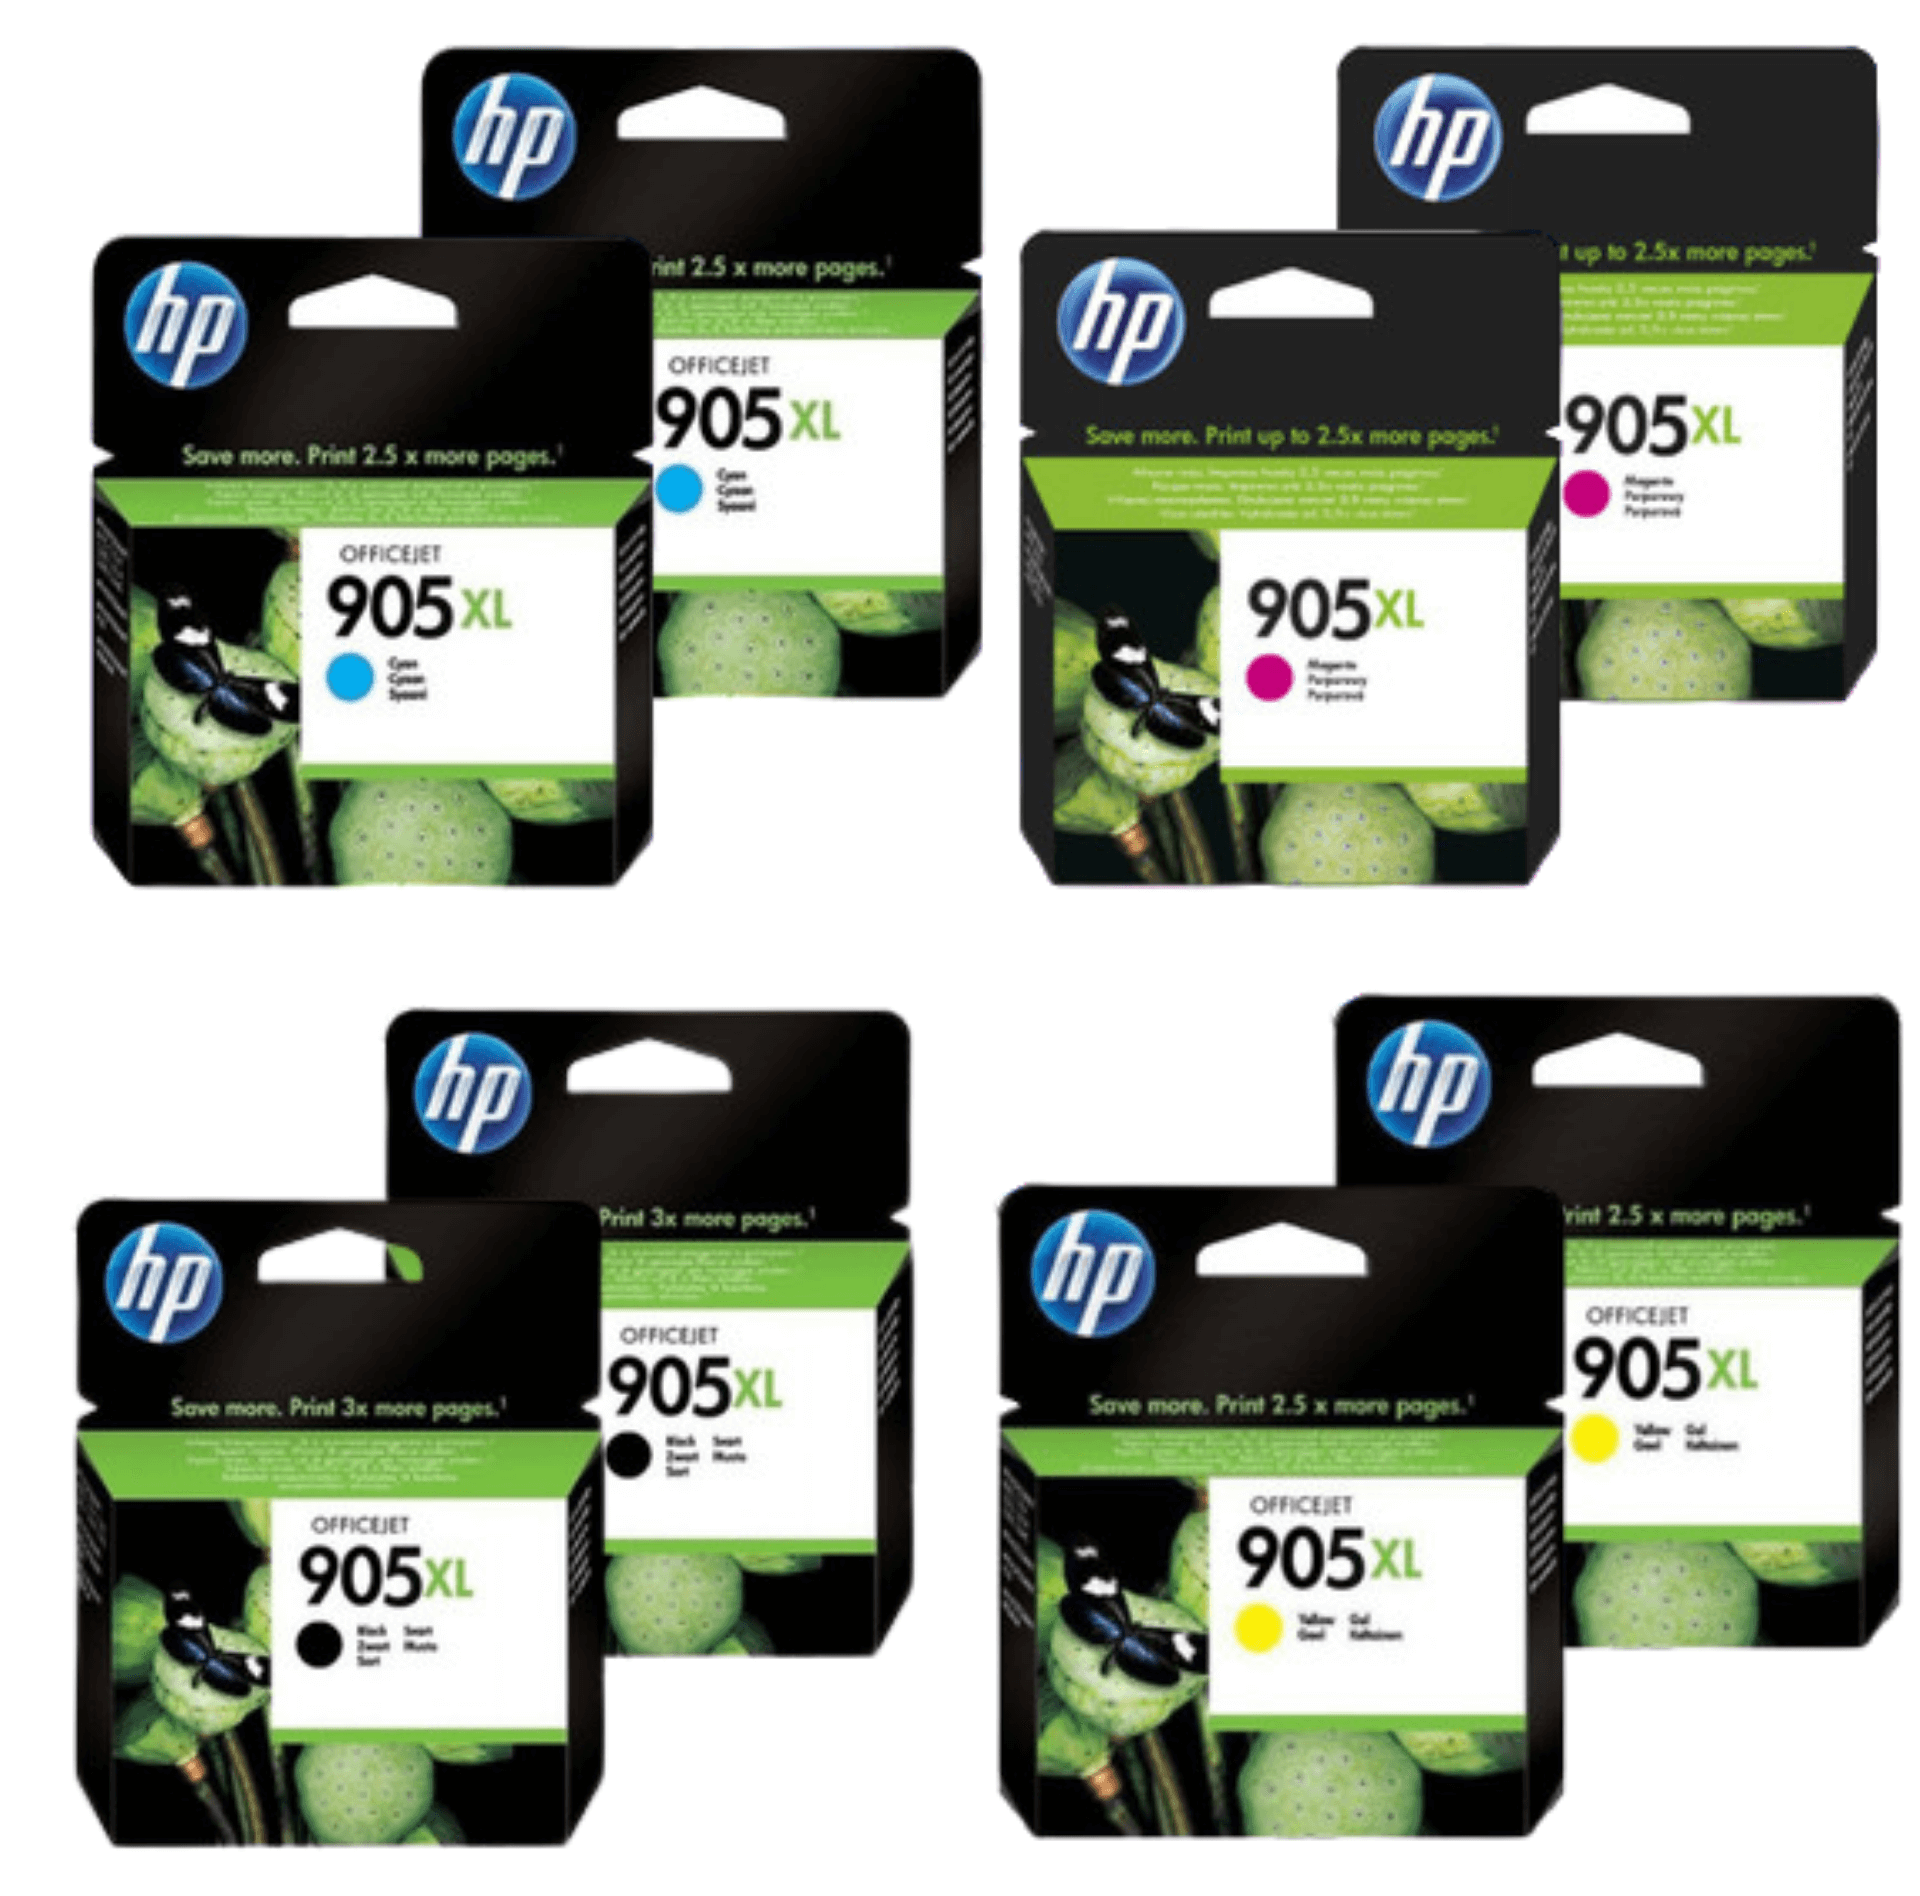 HP 905XL Ink Cartridge Value Pack - Includes: [2 x Black, Cyan, Magenta, Yellow]